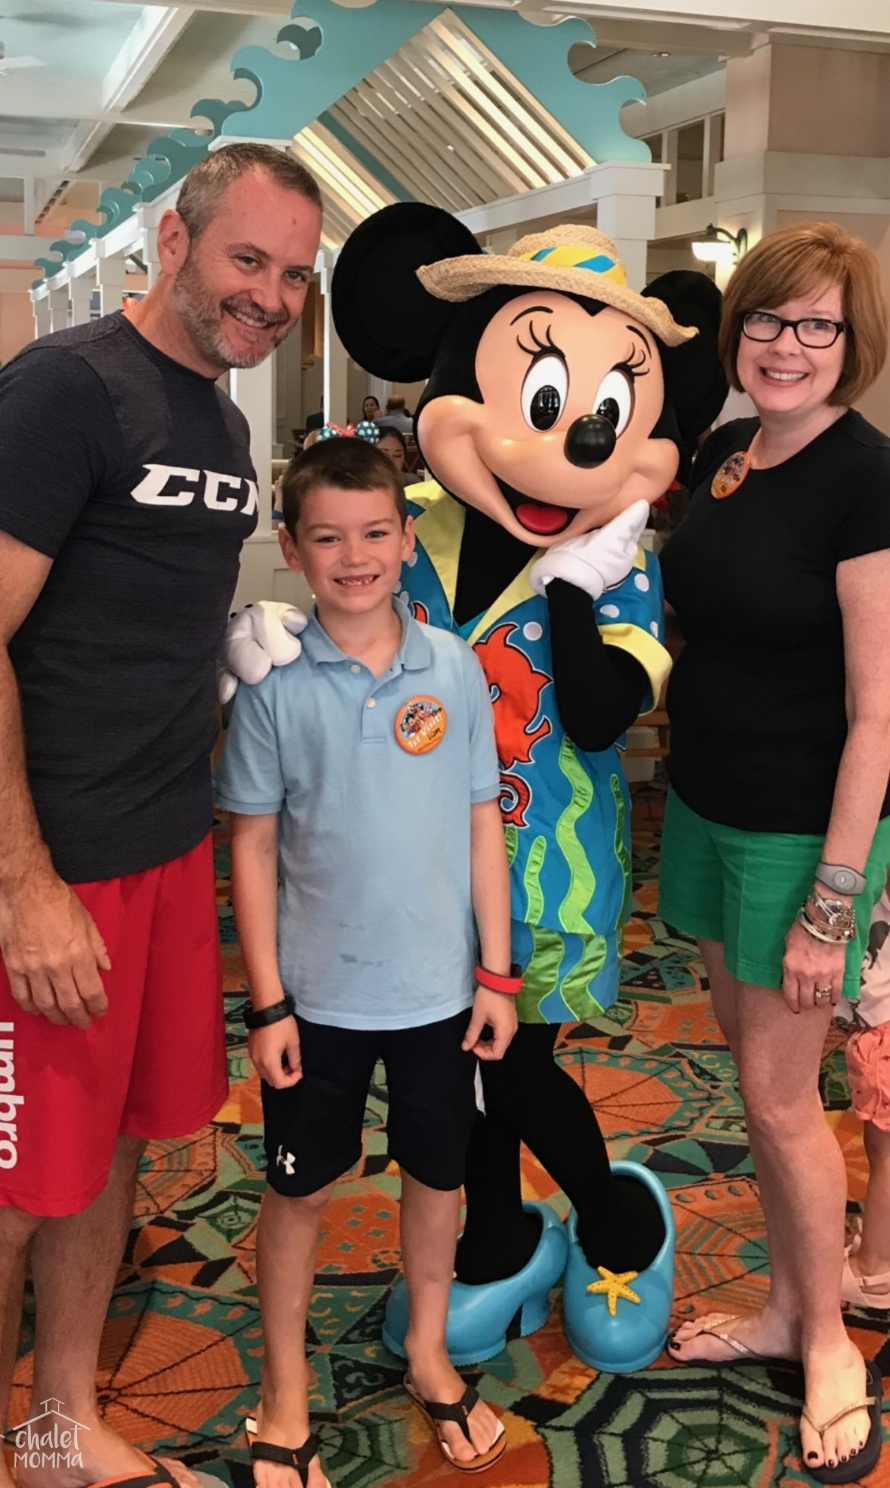 Meeting Minnie Mouse  September 25, 2018